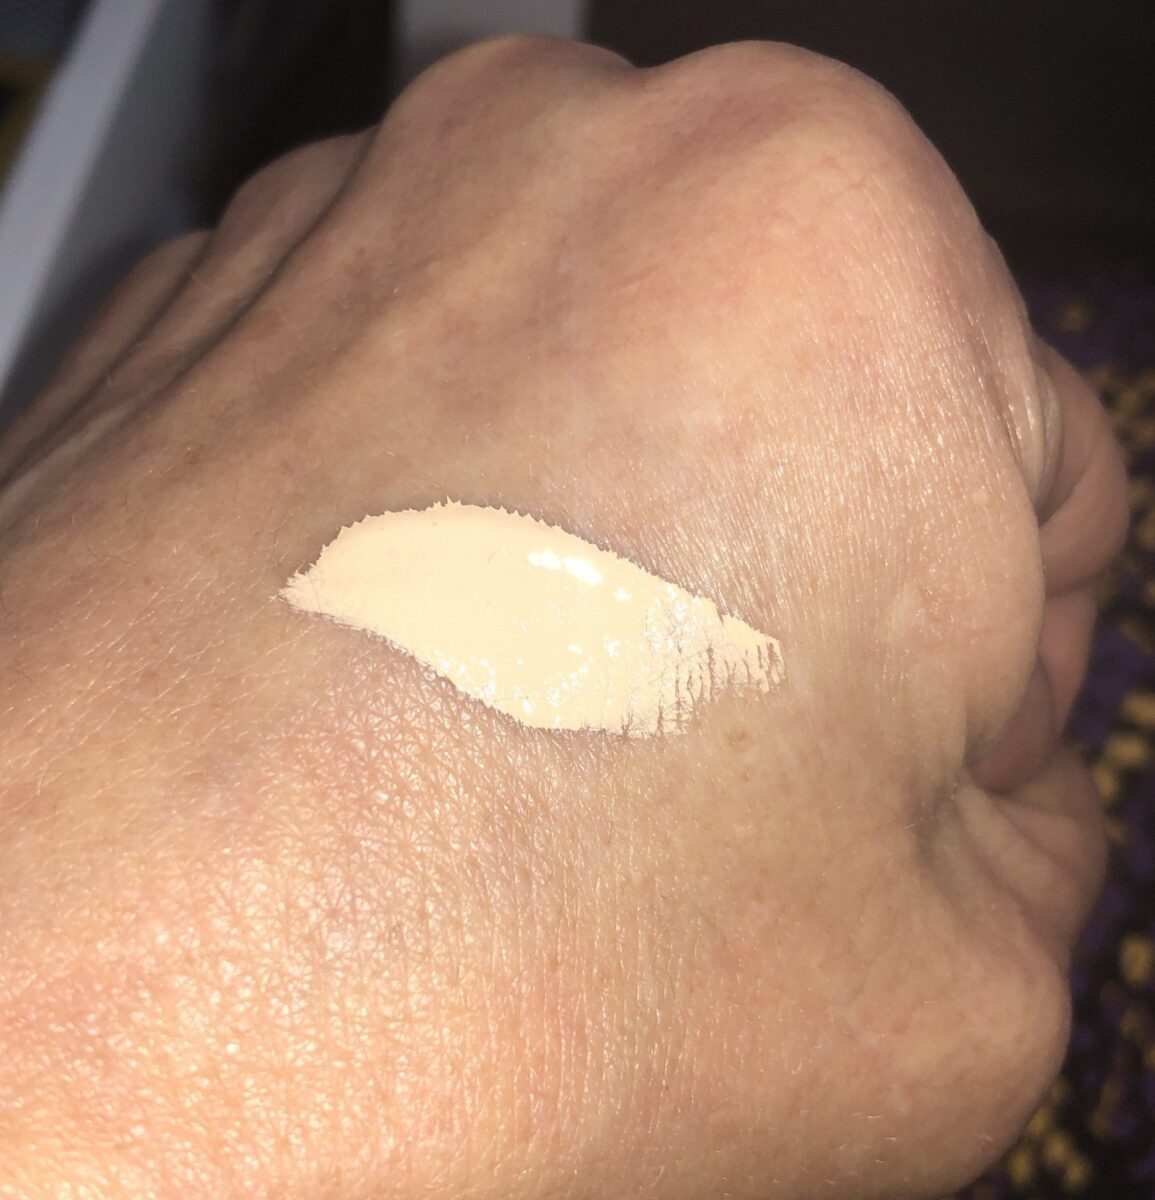 SWATCH OF THE HOURGLASS VANISH AIRBRUSH CONCEALER IN SEPIA